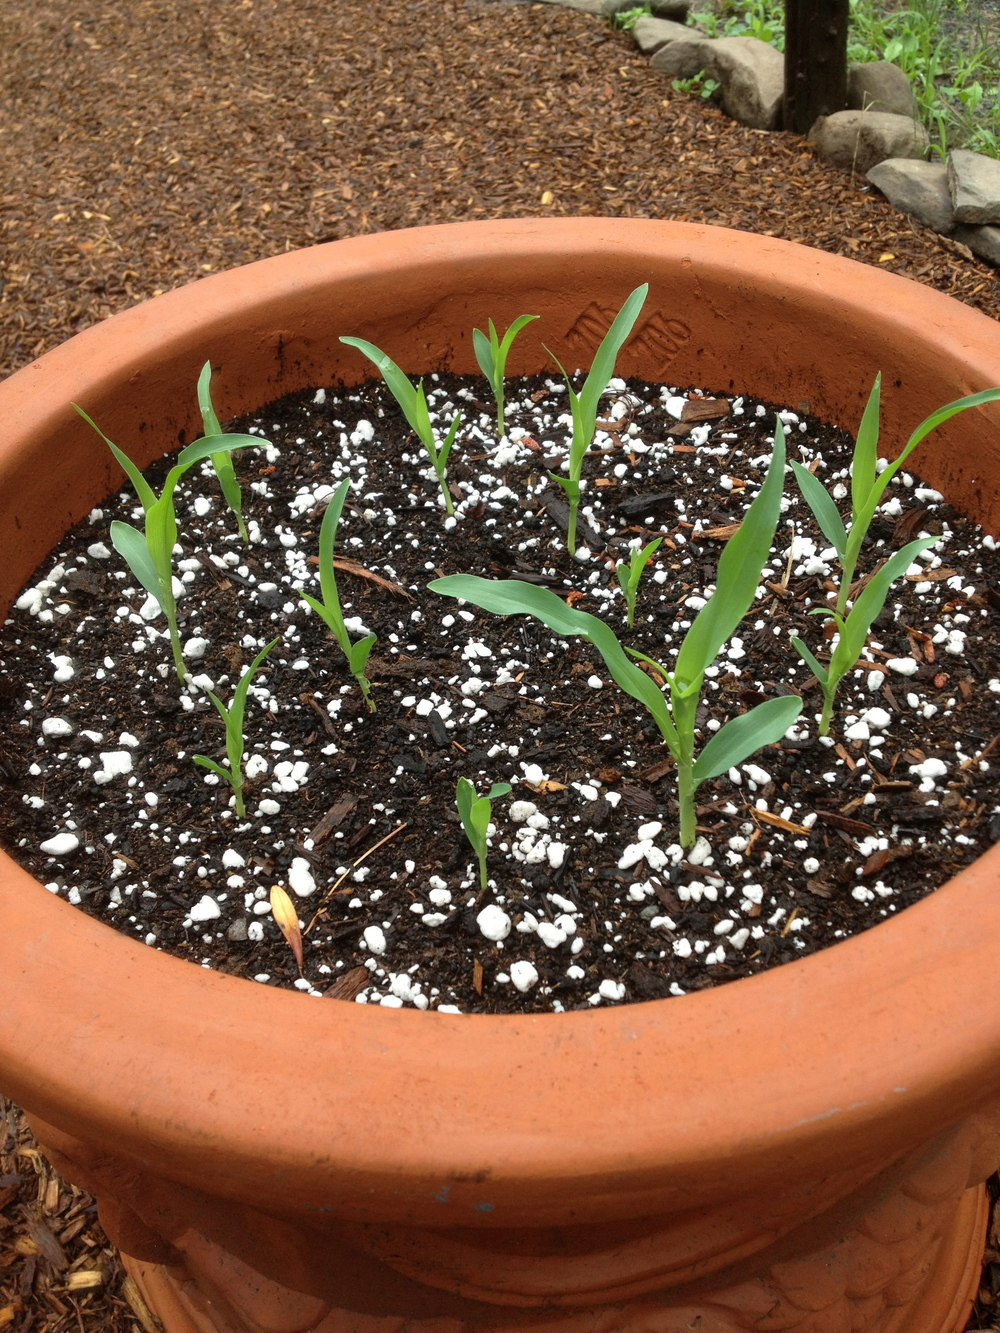 Corn sprouts.